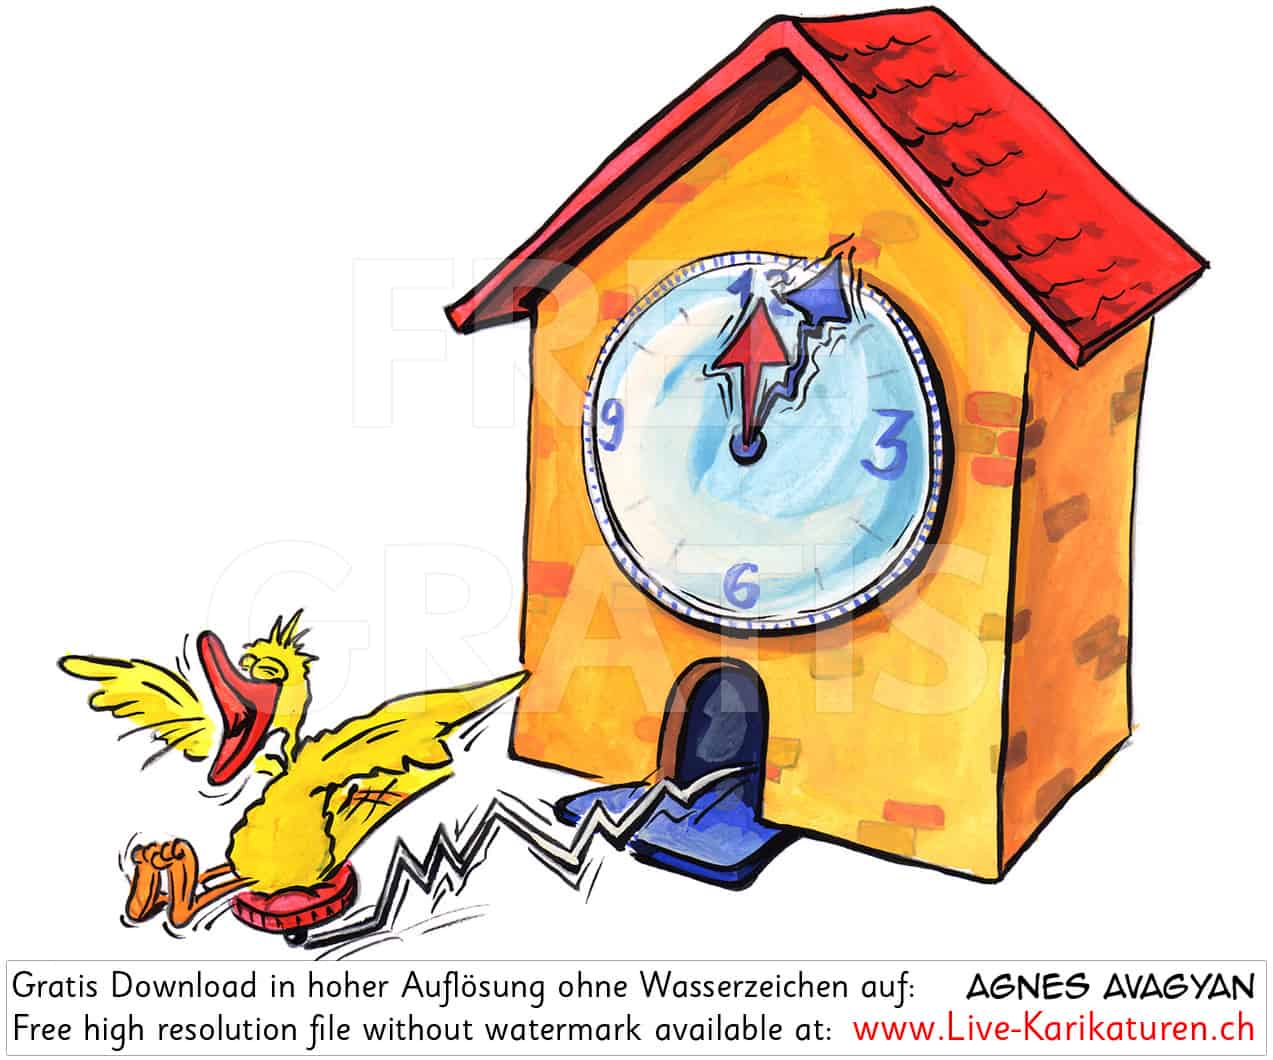 Uhr, Kuckucksuhr, Zeit, Vogel, Schwarzwalduh, Uhrzeit, Watch, Souvenir, Wanduhr, 12 Uhr, Wecker, Zeitangabe, Uhrwerk, Uhrmacher, Agnes Live-Karikaturen, Download, kostenlos, Gratisbild, Free image, Clipart, Comic, Cartoon, Illustration, Watermark Large